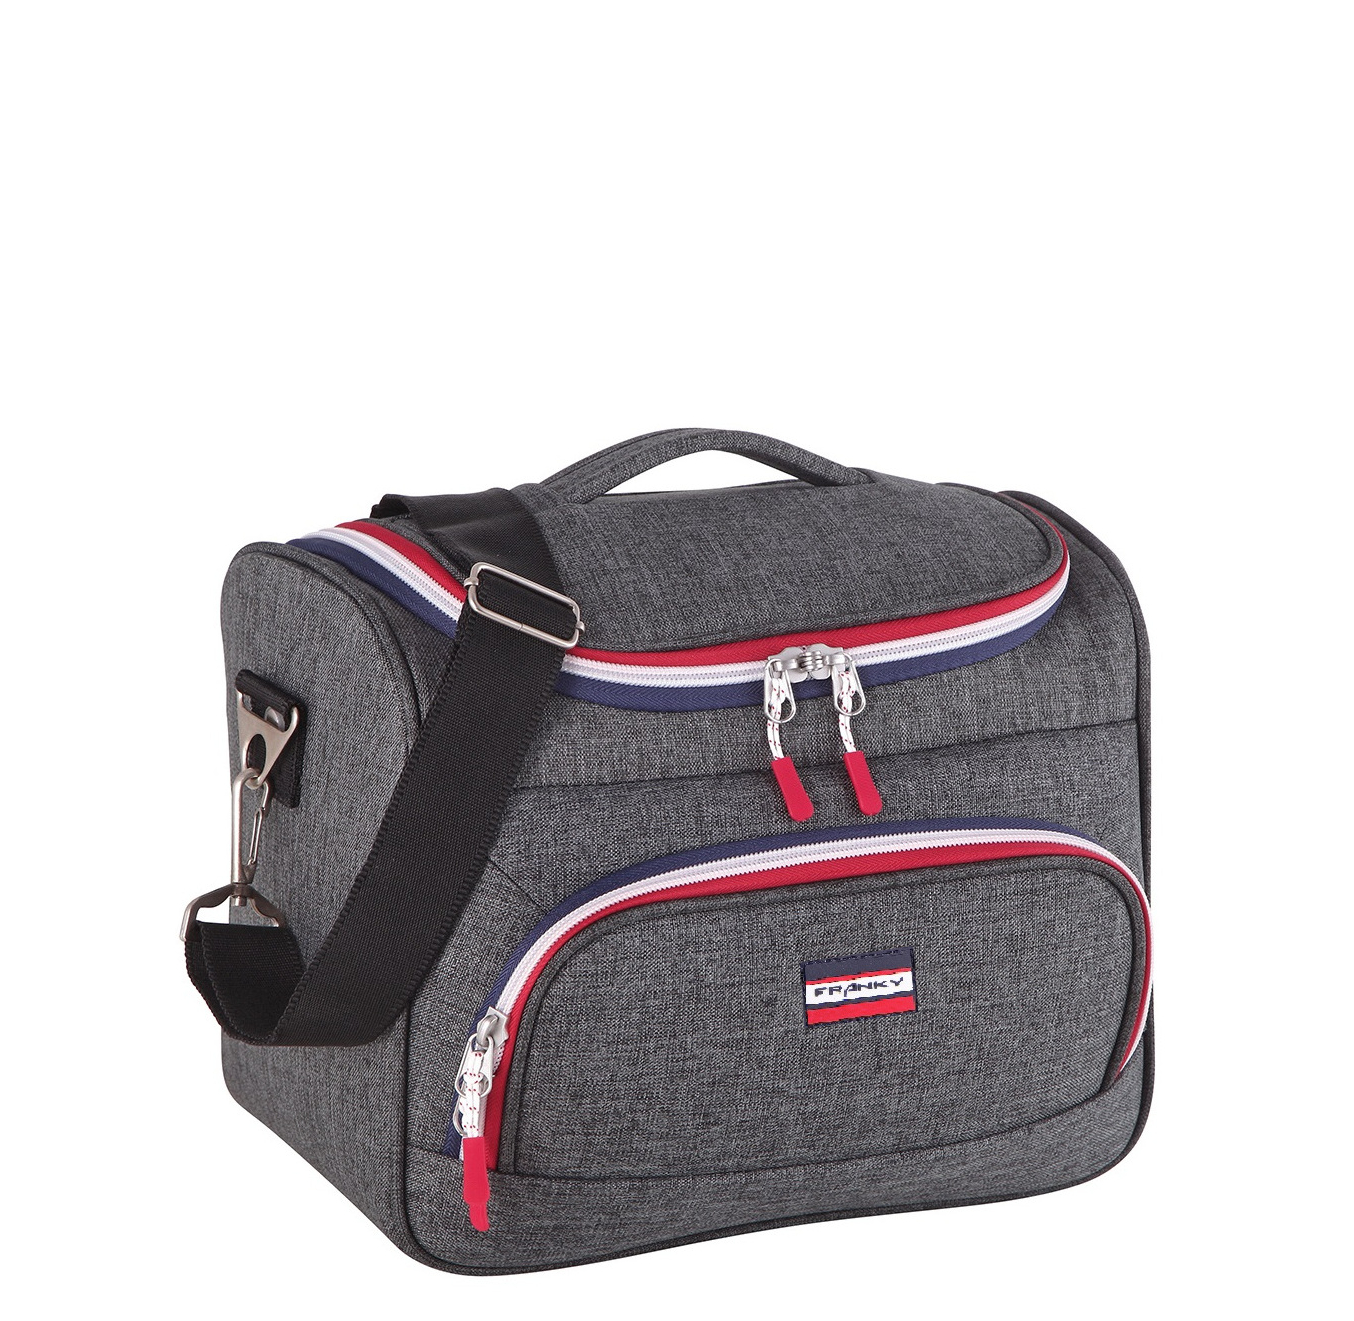 Franky Beautycase grey sports